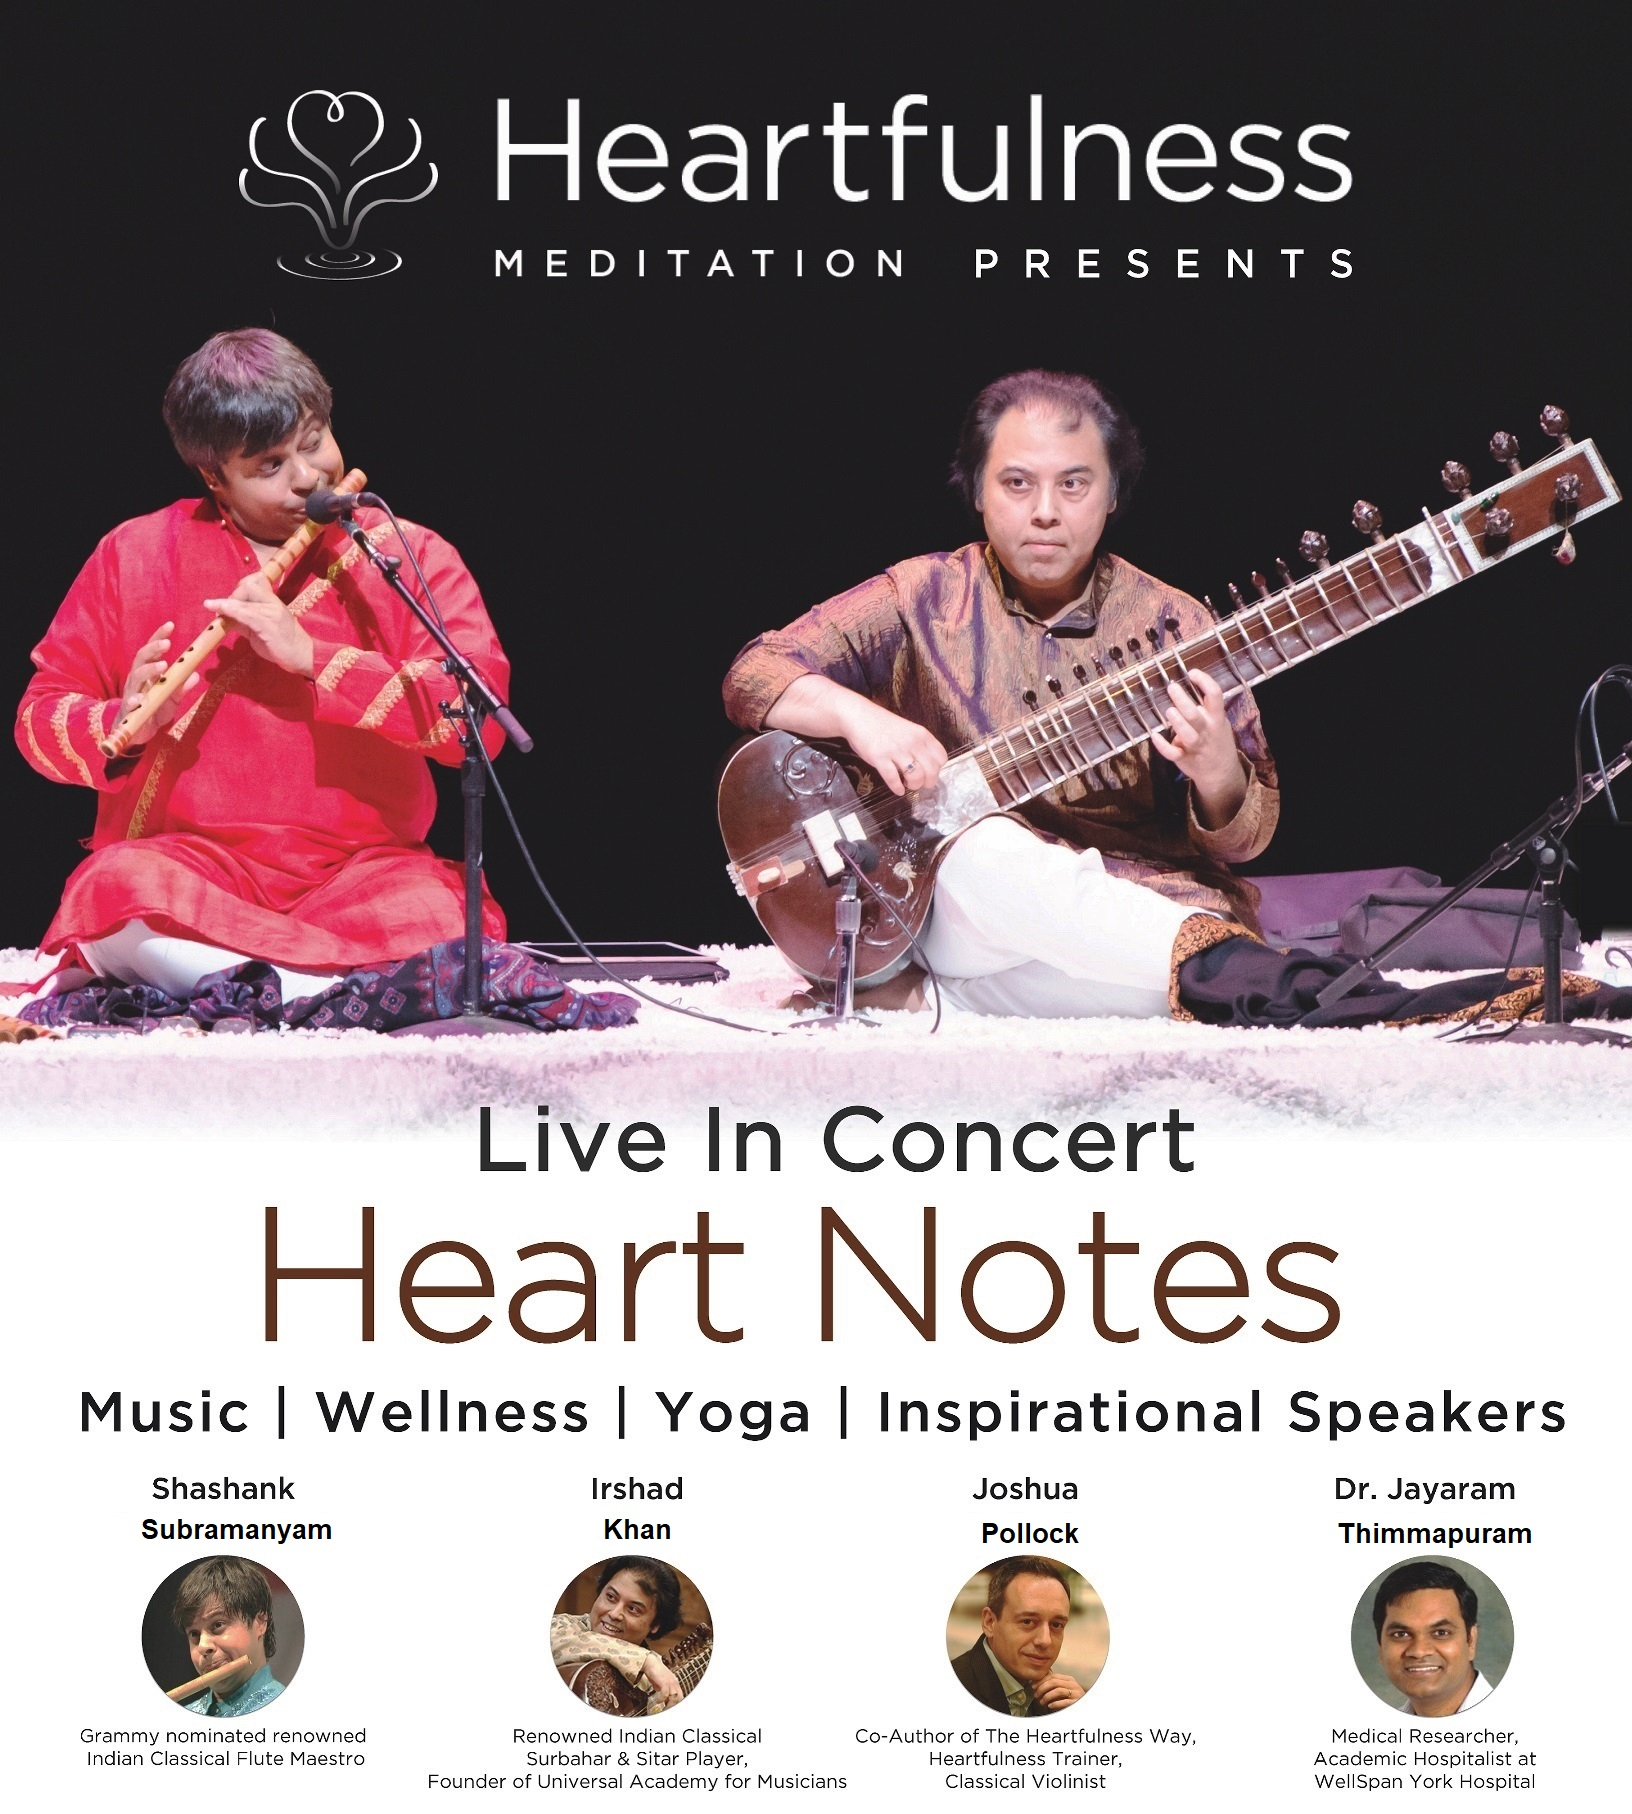 Music concert by the Grammy-nominated famous exponent of the Bamboo Flute